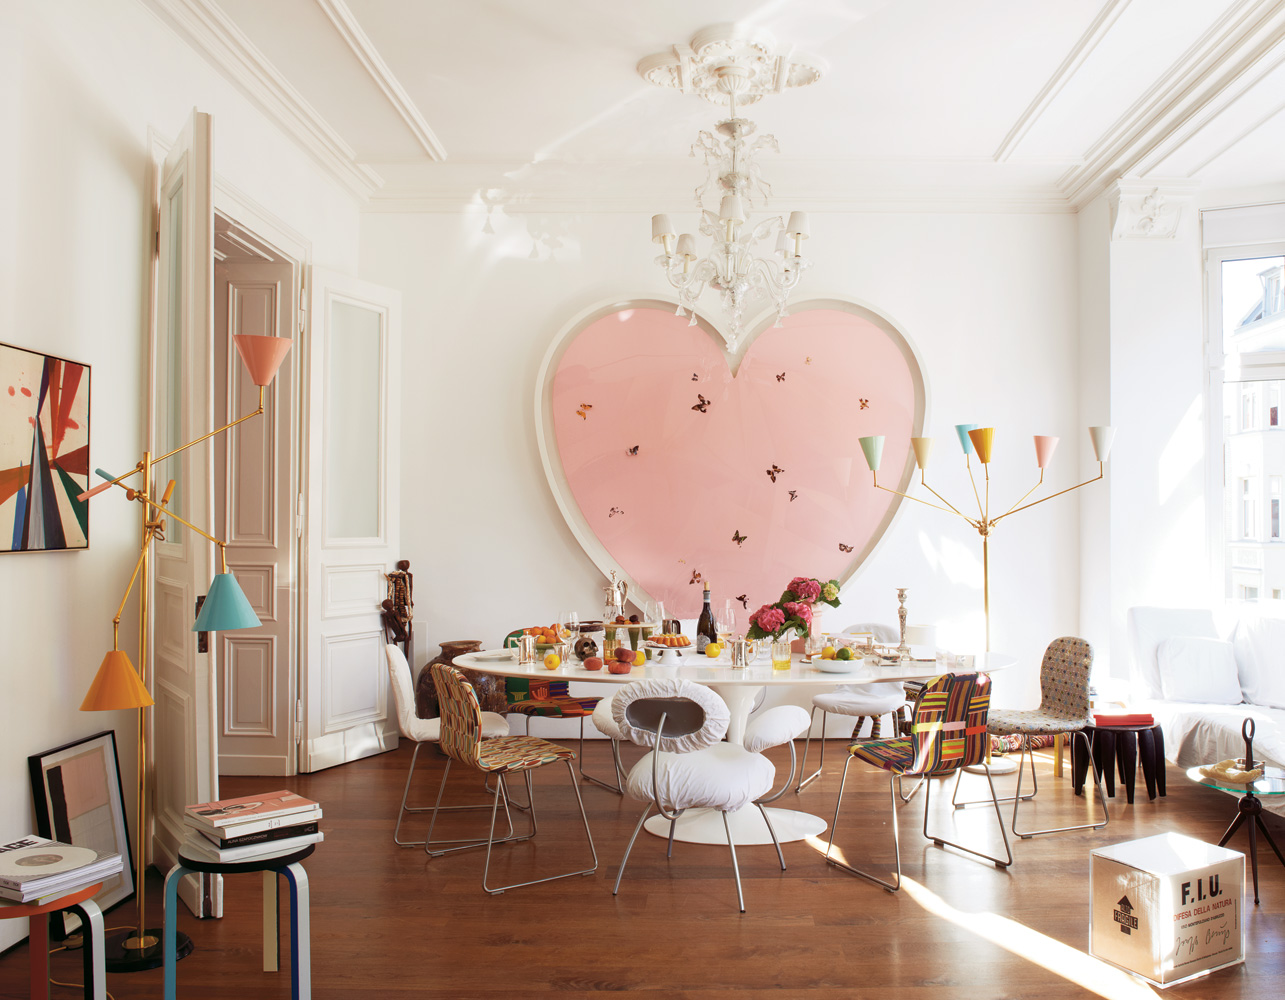 Mike Meire and Michelle Ellie's home via NY Times (can someone please buy me the heart shape Damien Hirst painting???)